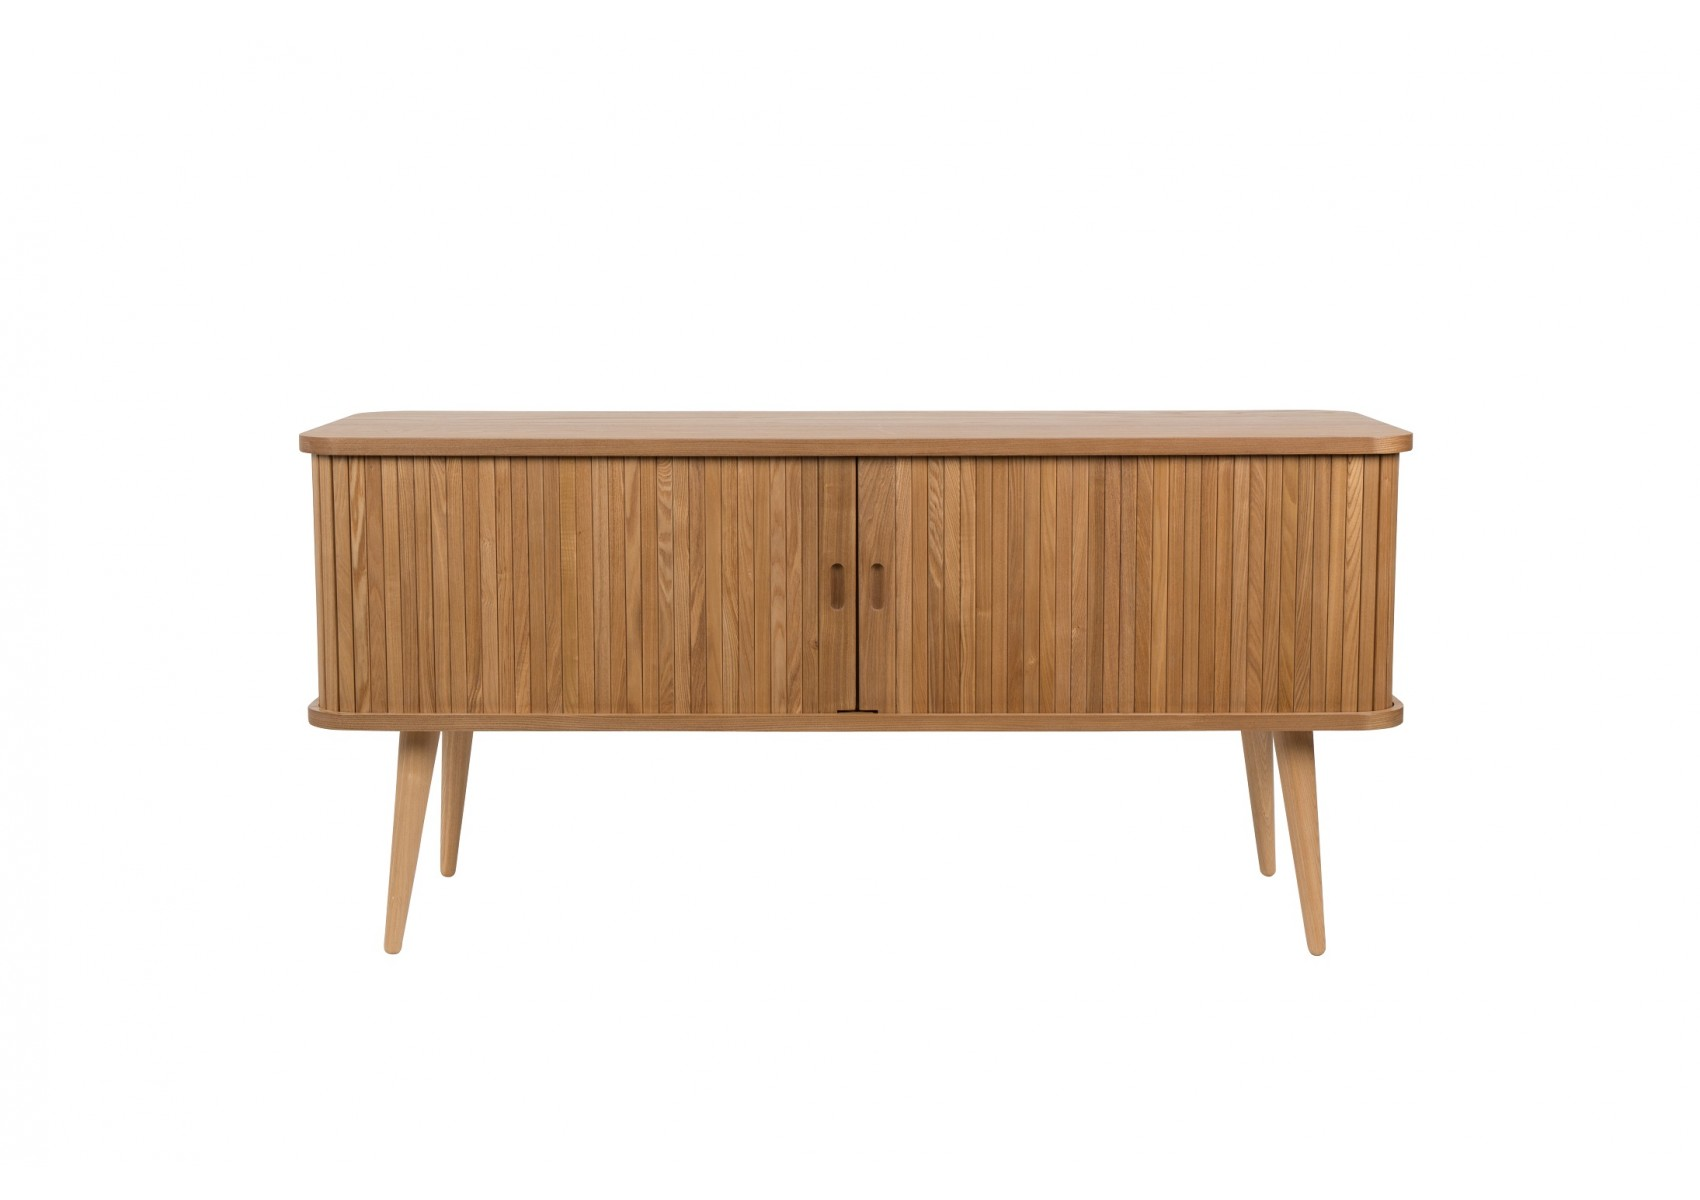 Buffet En Bois Au Design Scandinave Sideboard Barbier Par Zuiver # Meuble Tv Design Suedois